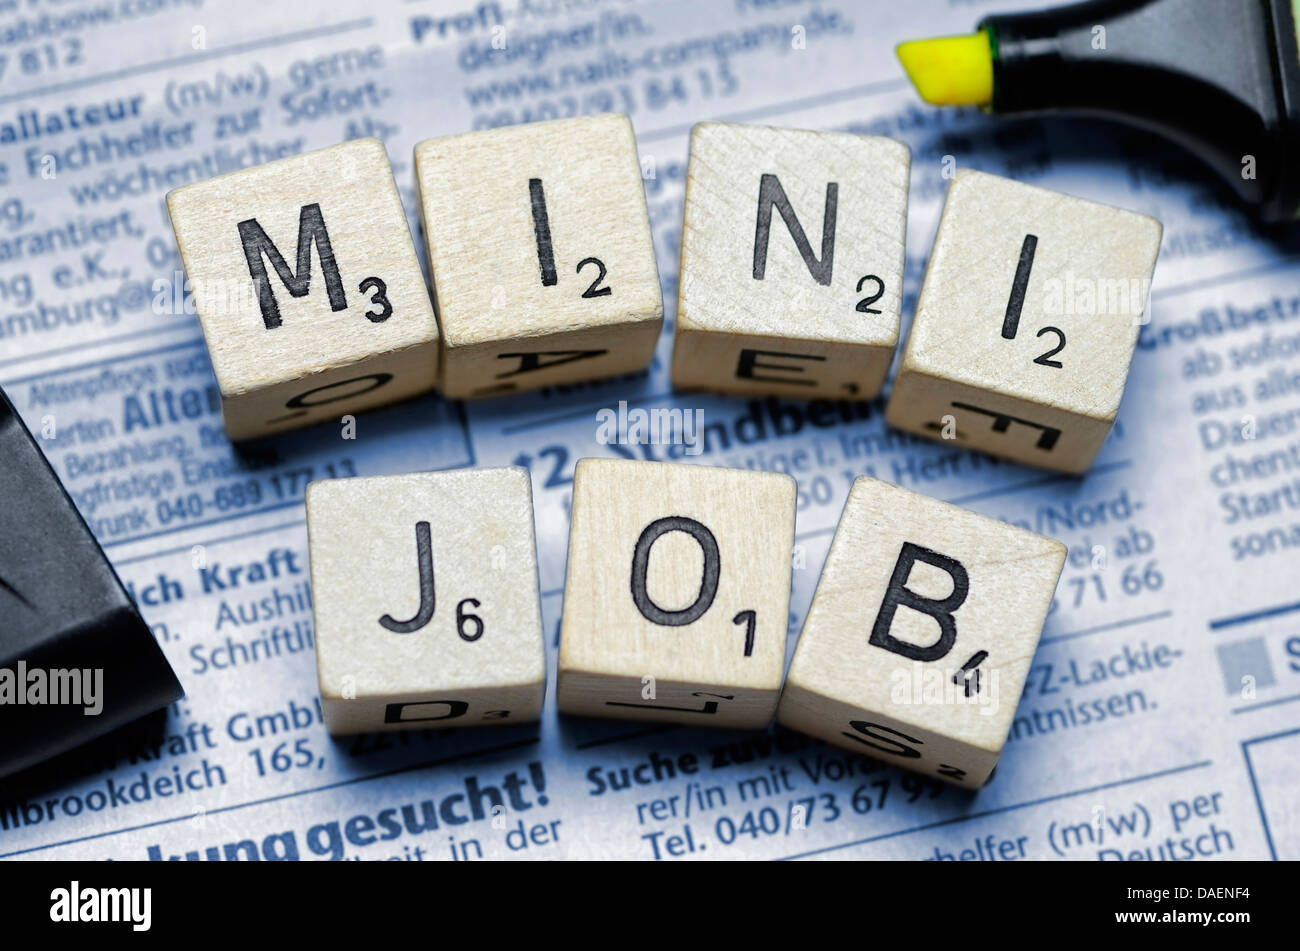 letter tokens forming the word minijob on job ads - Stock Image